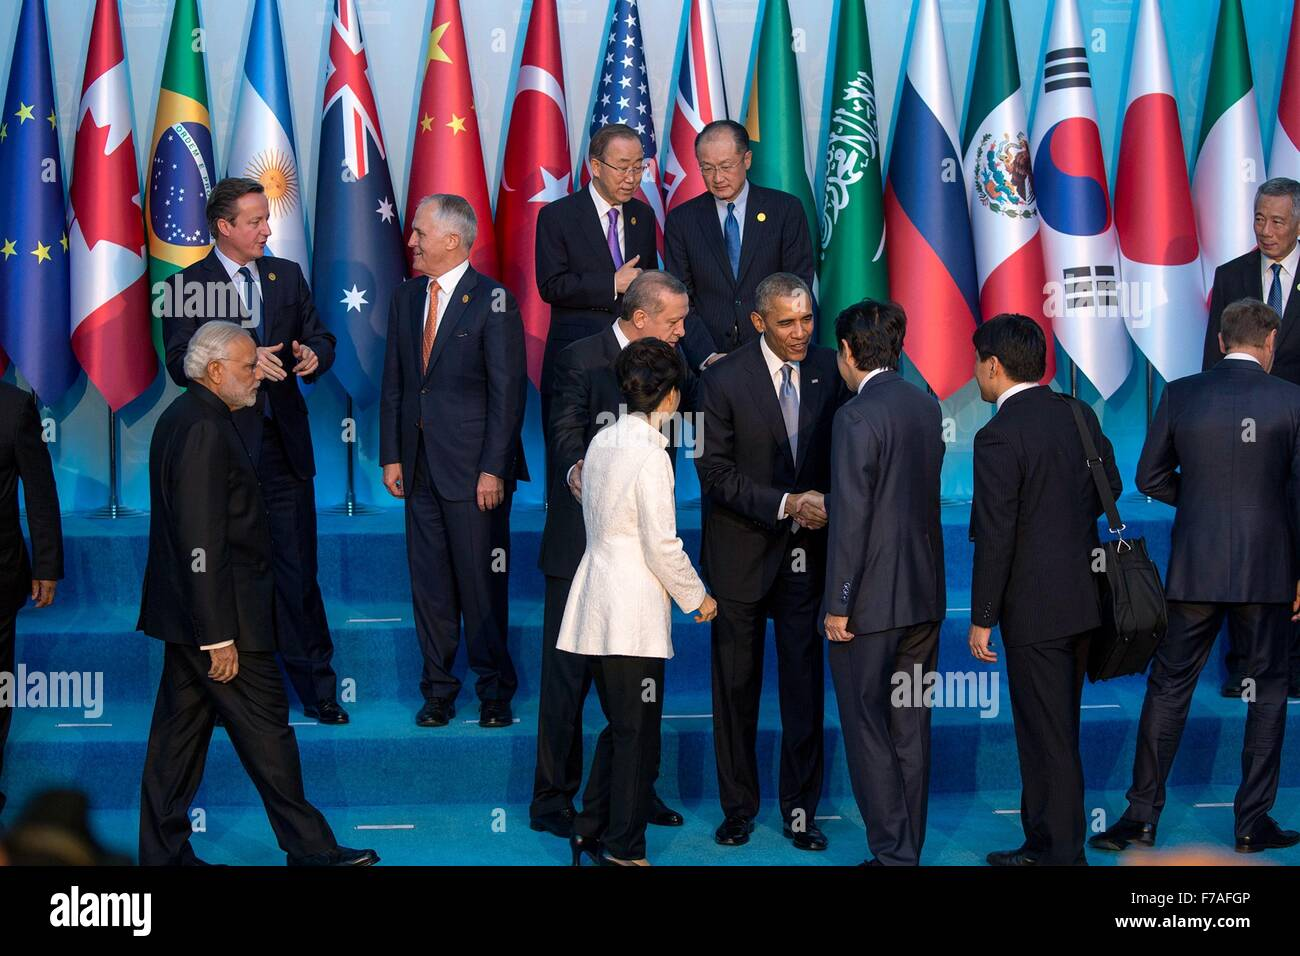 U.S. President Barack Obama with G20 leaders before the group photo at the start of the G20 summit November 15, - Stock Image